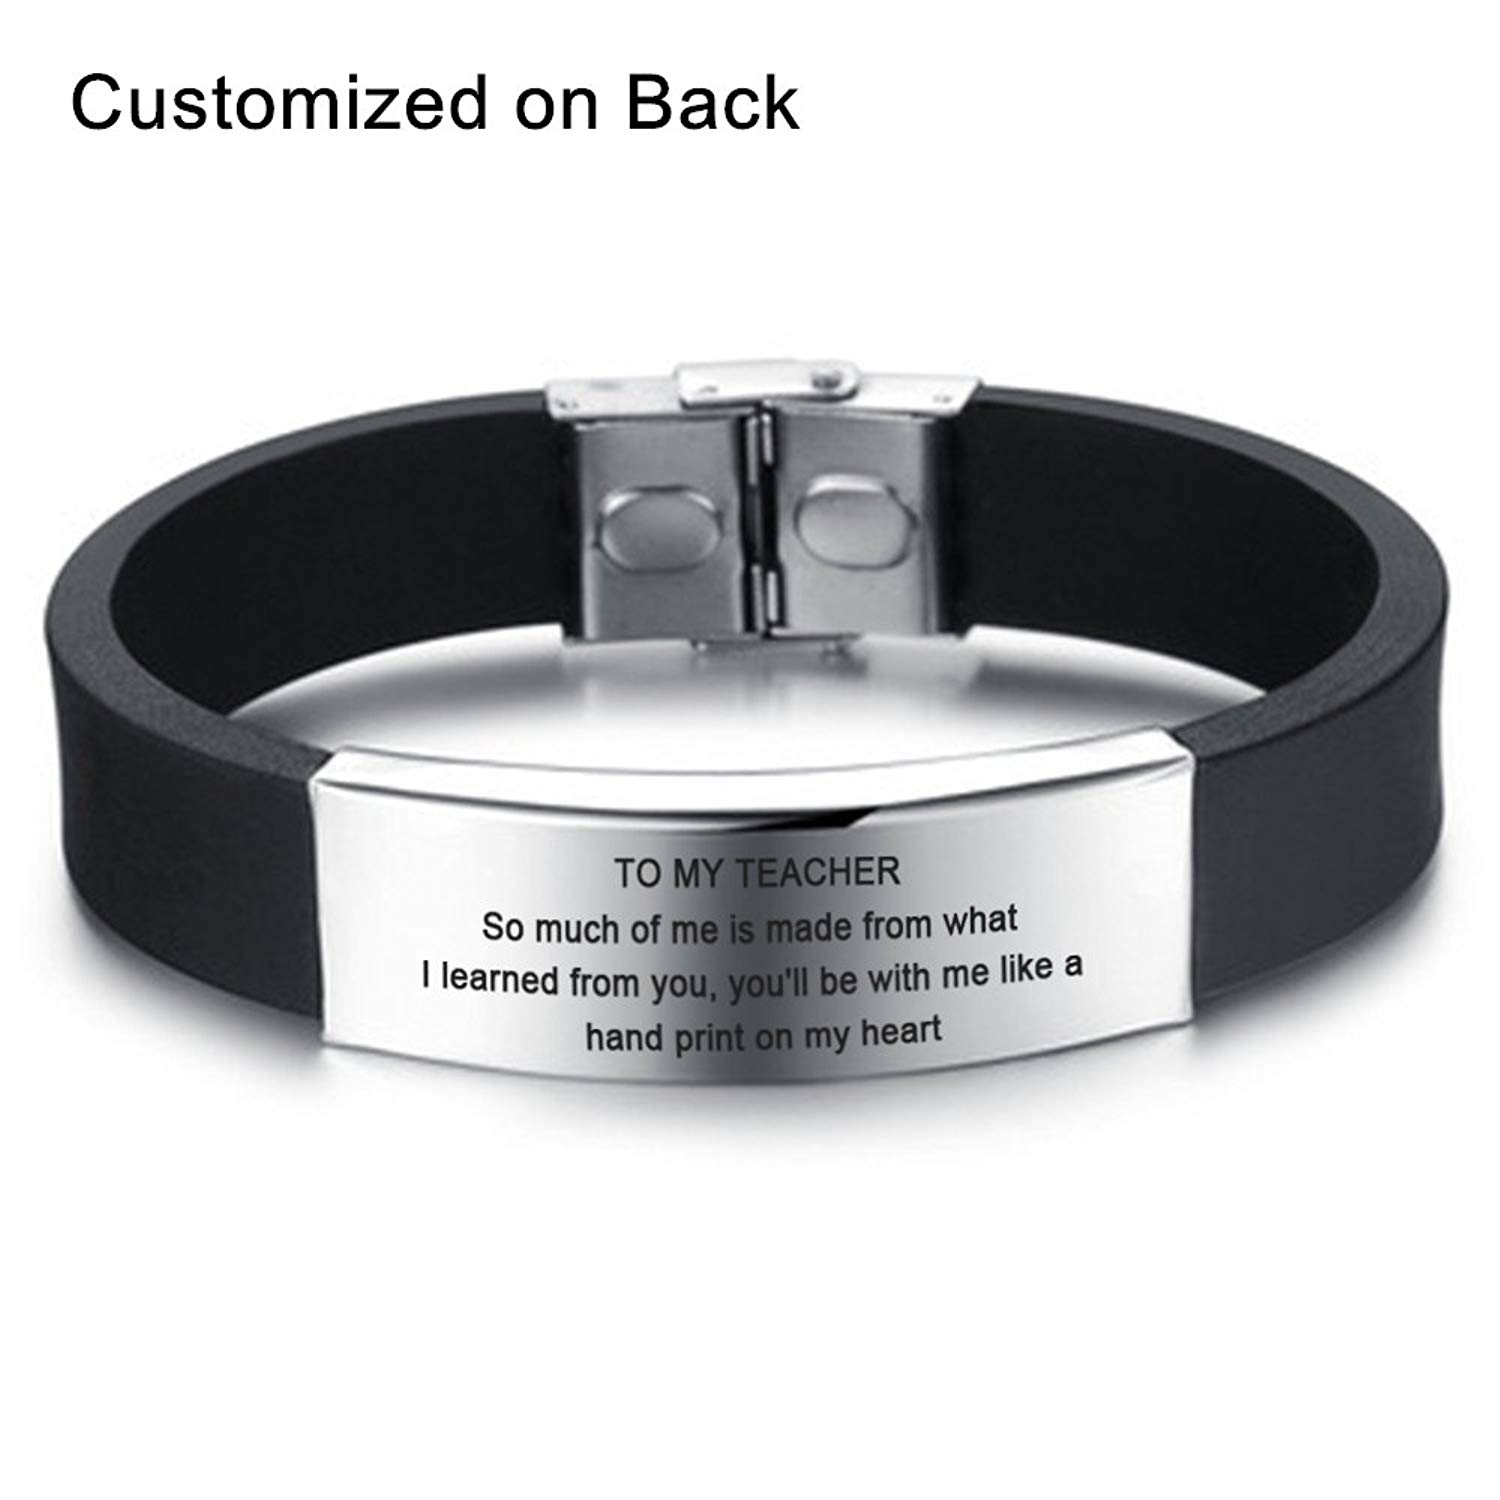 LF Mens Stainless Steel Silicone Personalized Name Date Custom To My Teachers Bracelet Gifts Appreciation Inspirational Motivational Cuff Bracelets for Teachers Day Gift,Free Engraving Customized